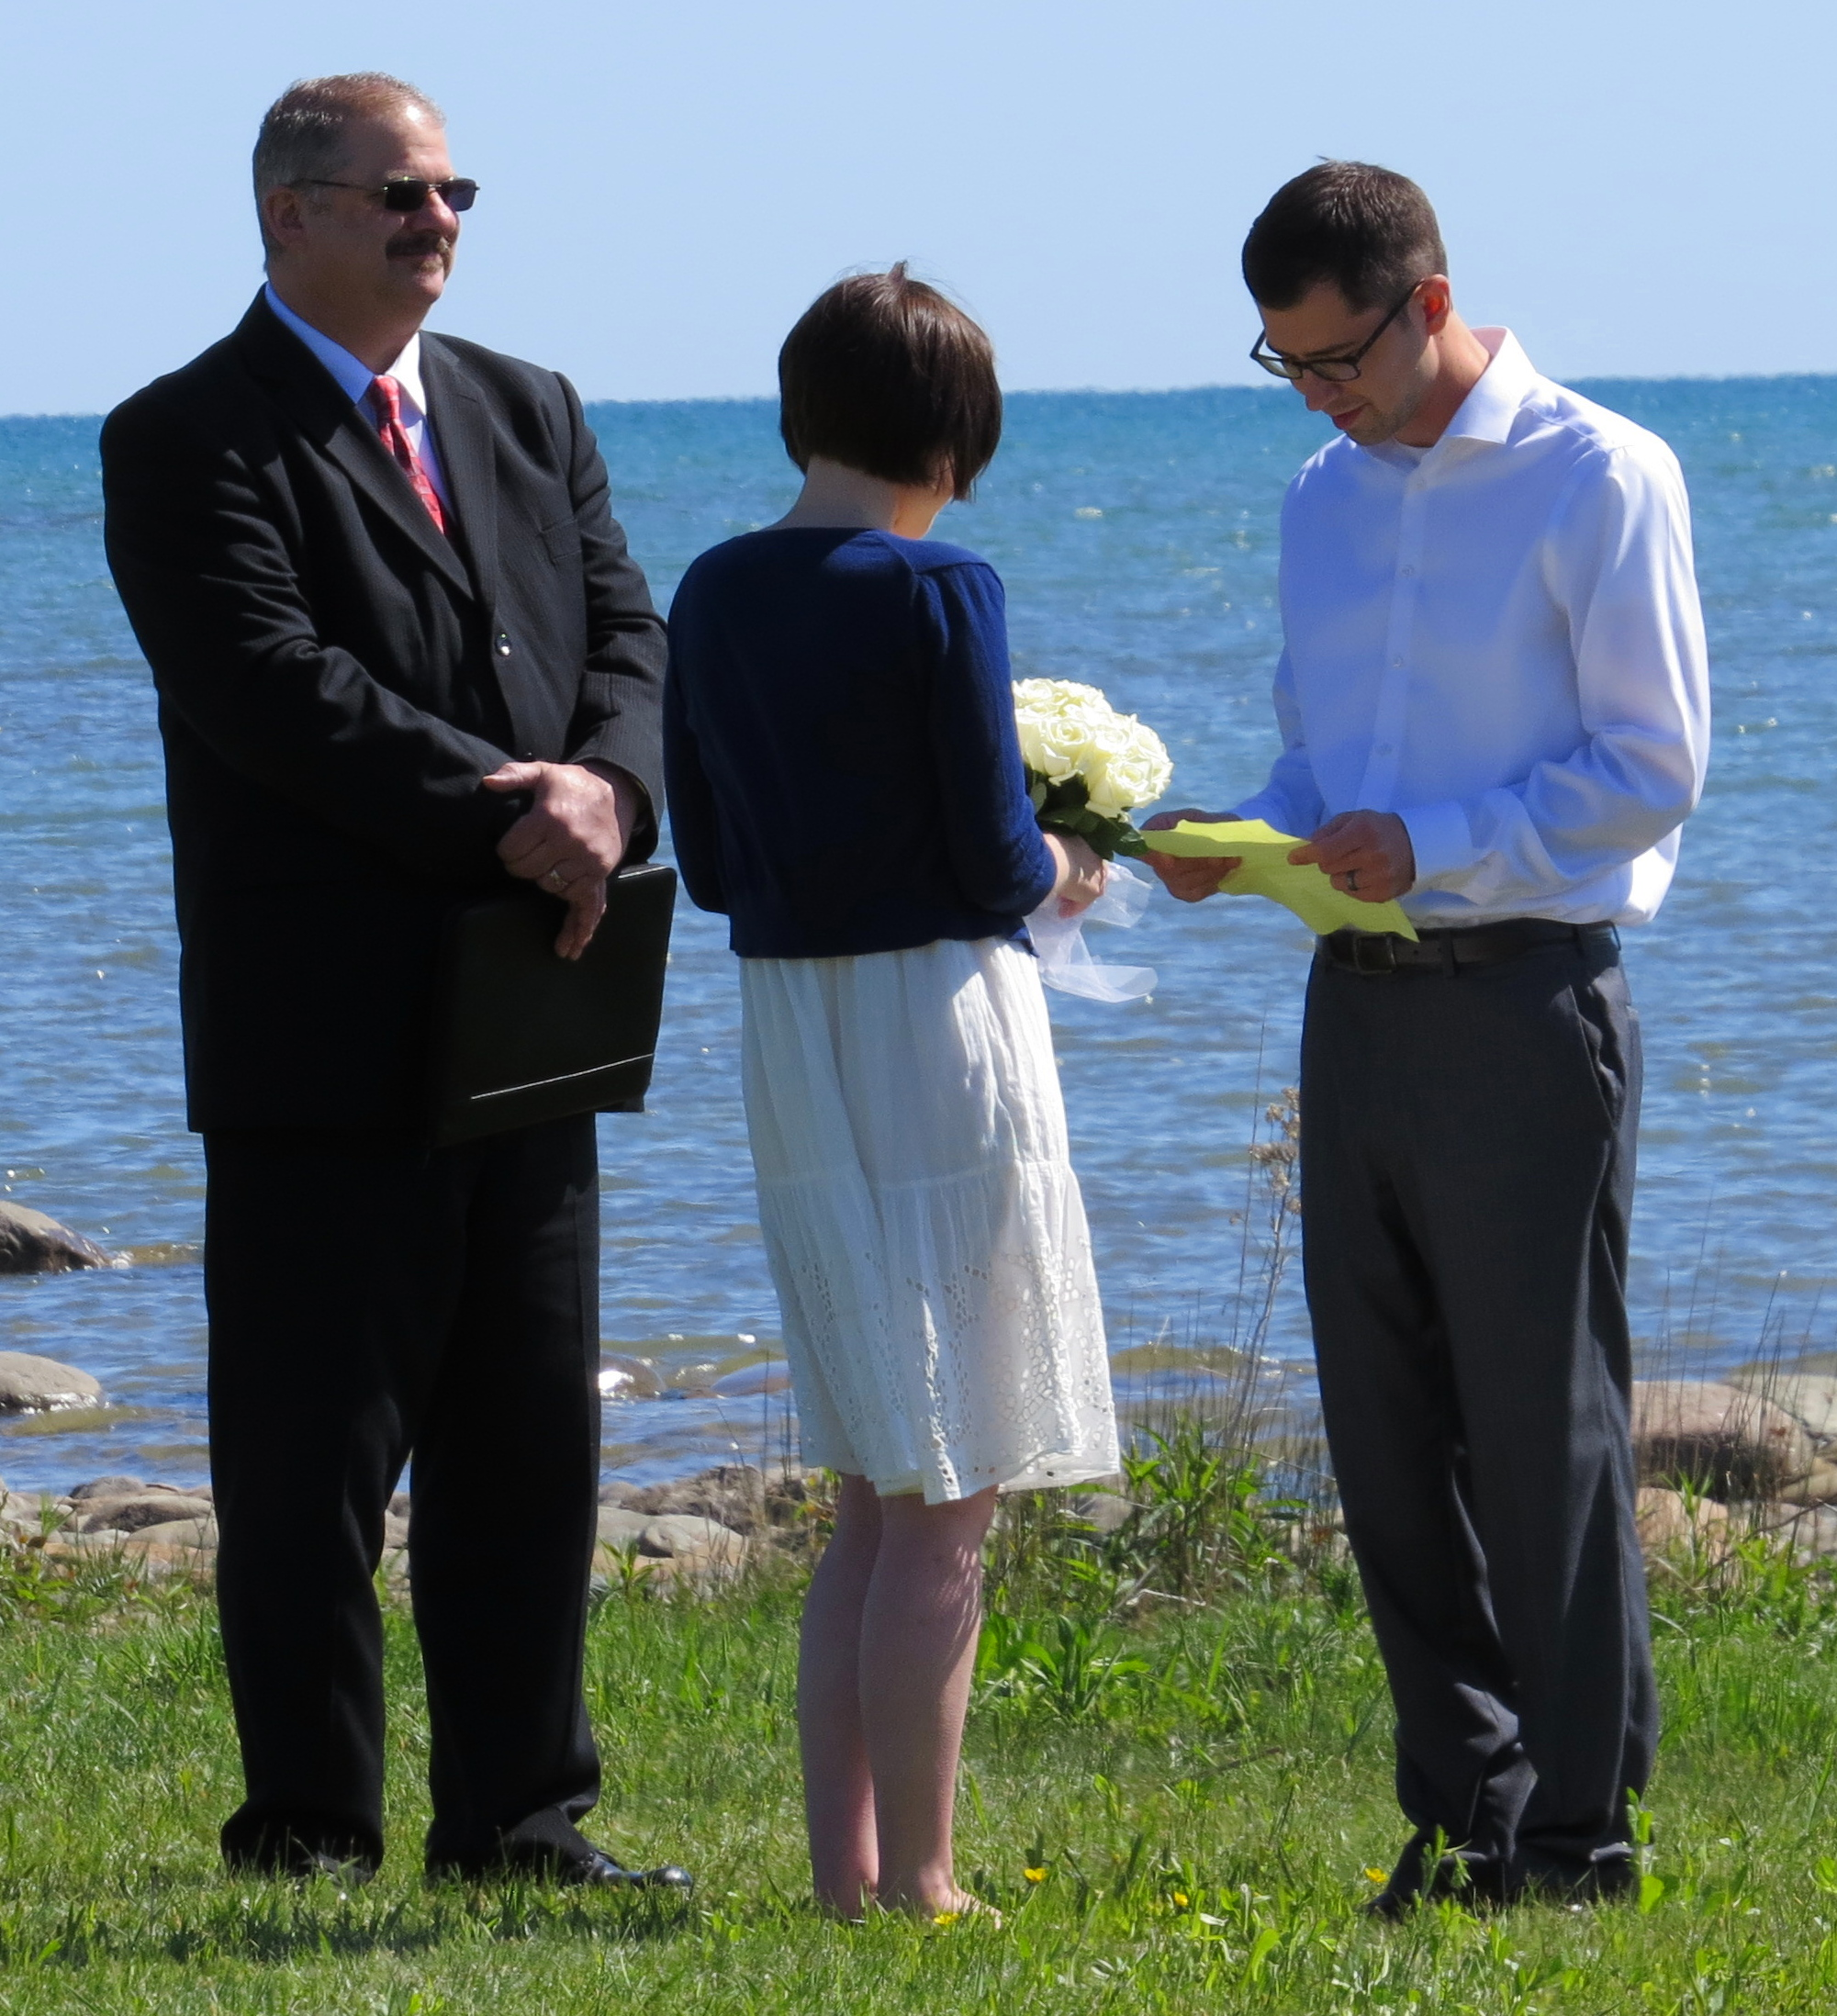 Beach Wedding Ceremony Michigan: Michigan Wedding Vow Renewal